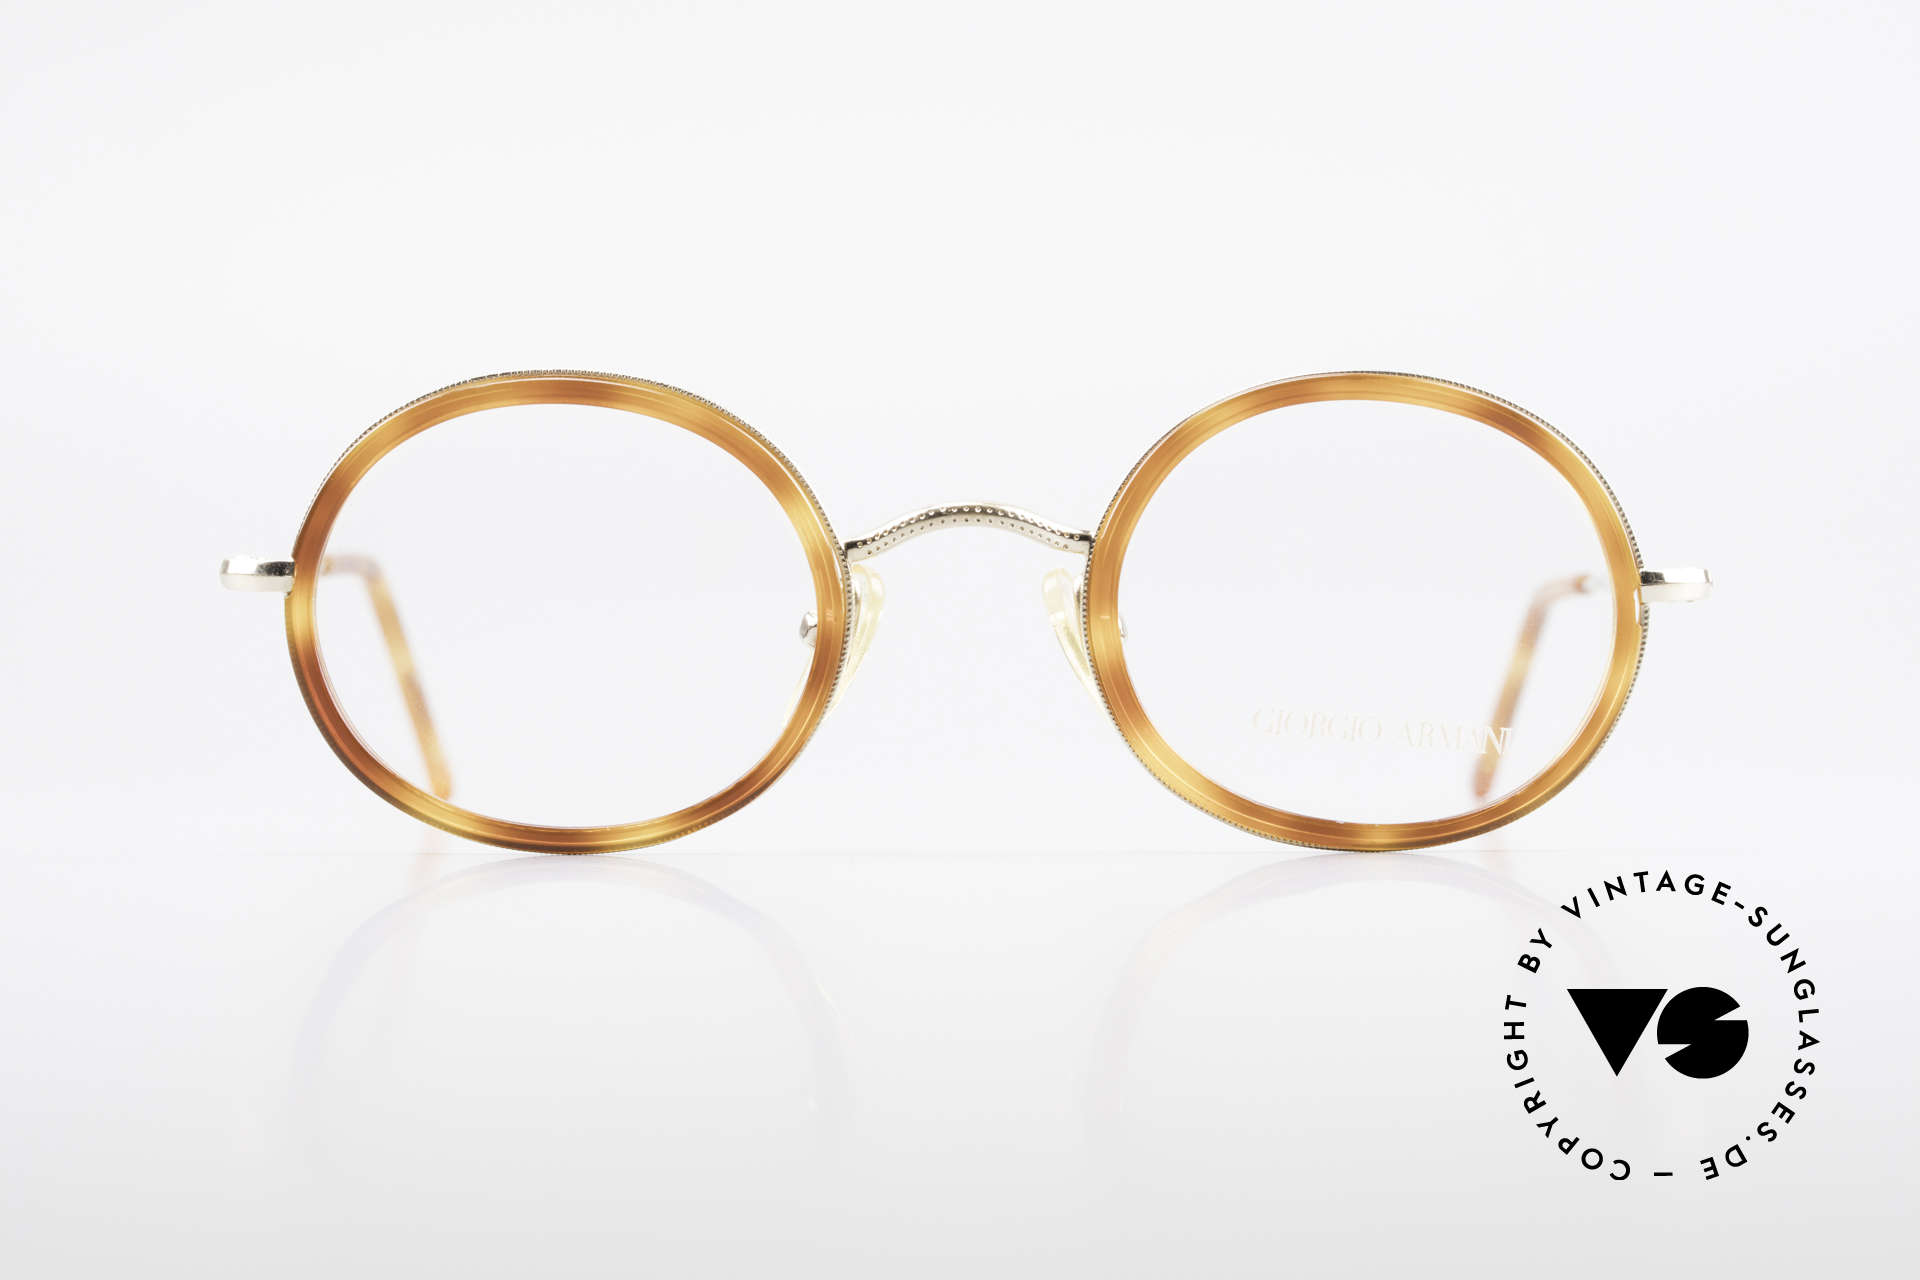 Giorgio Armani 139 Oval Vintage Eyeglasses 90's, a true classic in design & coloring (timeless elegant), Made for Men and Women